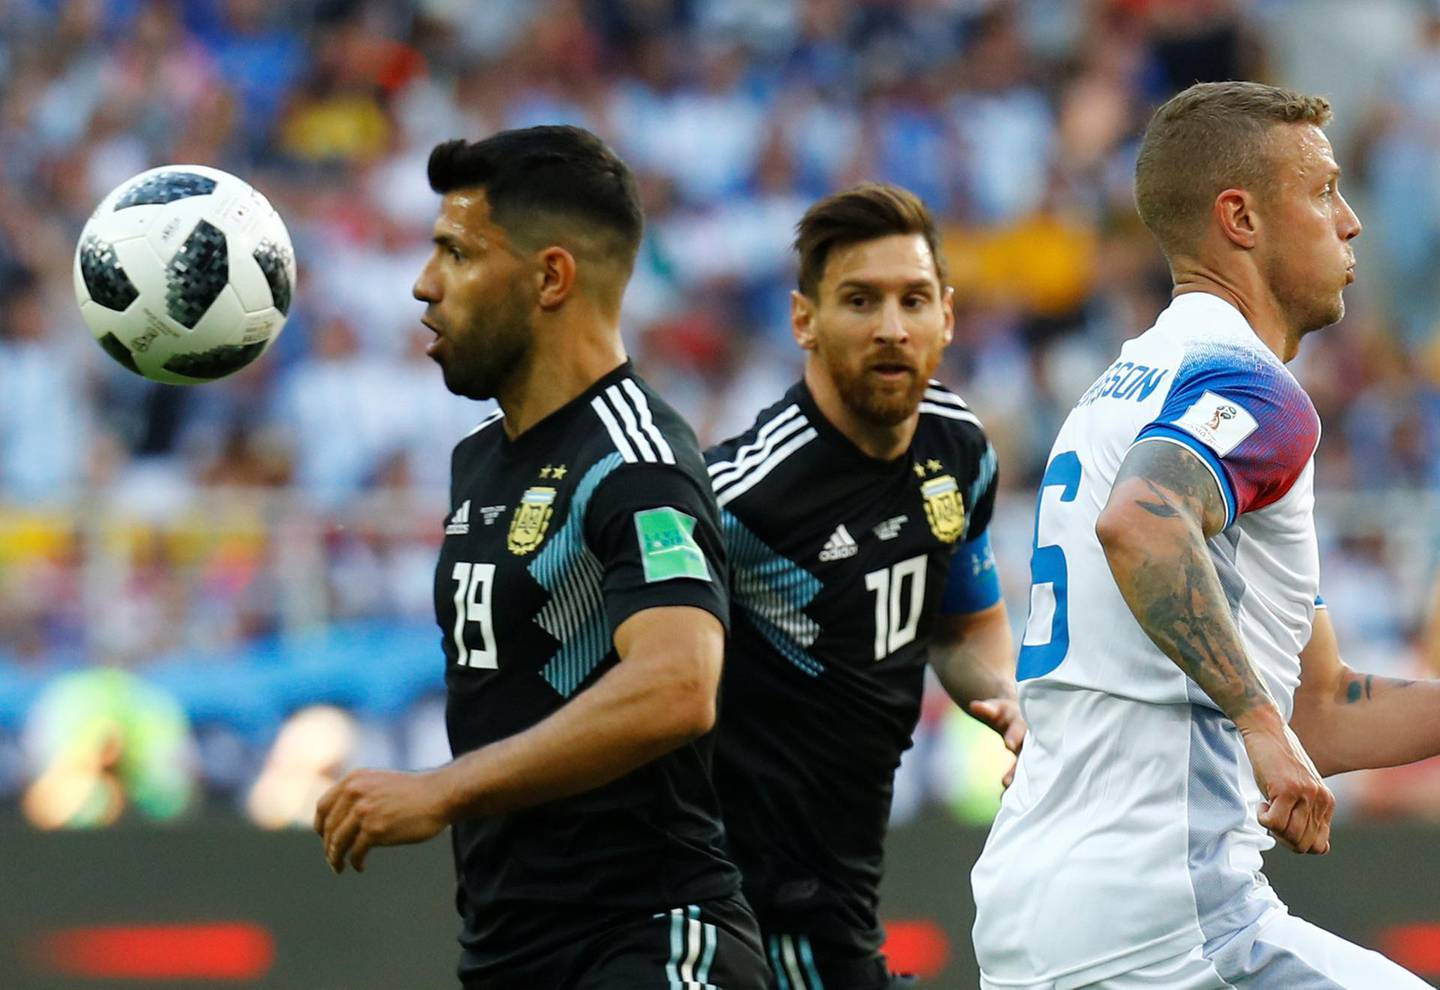 Soccer Football - World Cup - Group D - Argentina vs Iceland - Spartak Stadium, Moscow, Russia - June 16, 2018   Argentina's Sergio Aguero and Lionel Messi in action with Iceland's Ragnar Sigurdsson      REUTERS/Kai Pfaffenbach